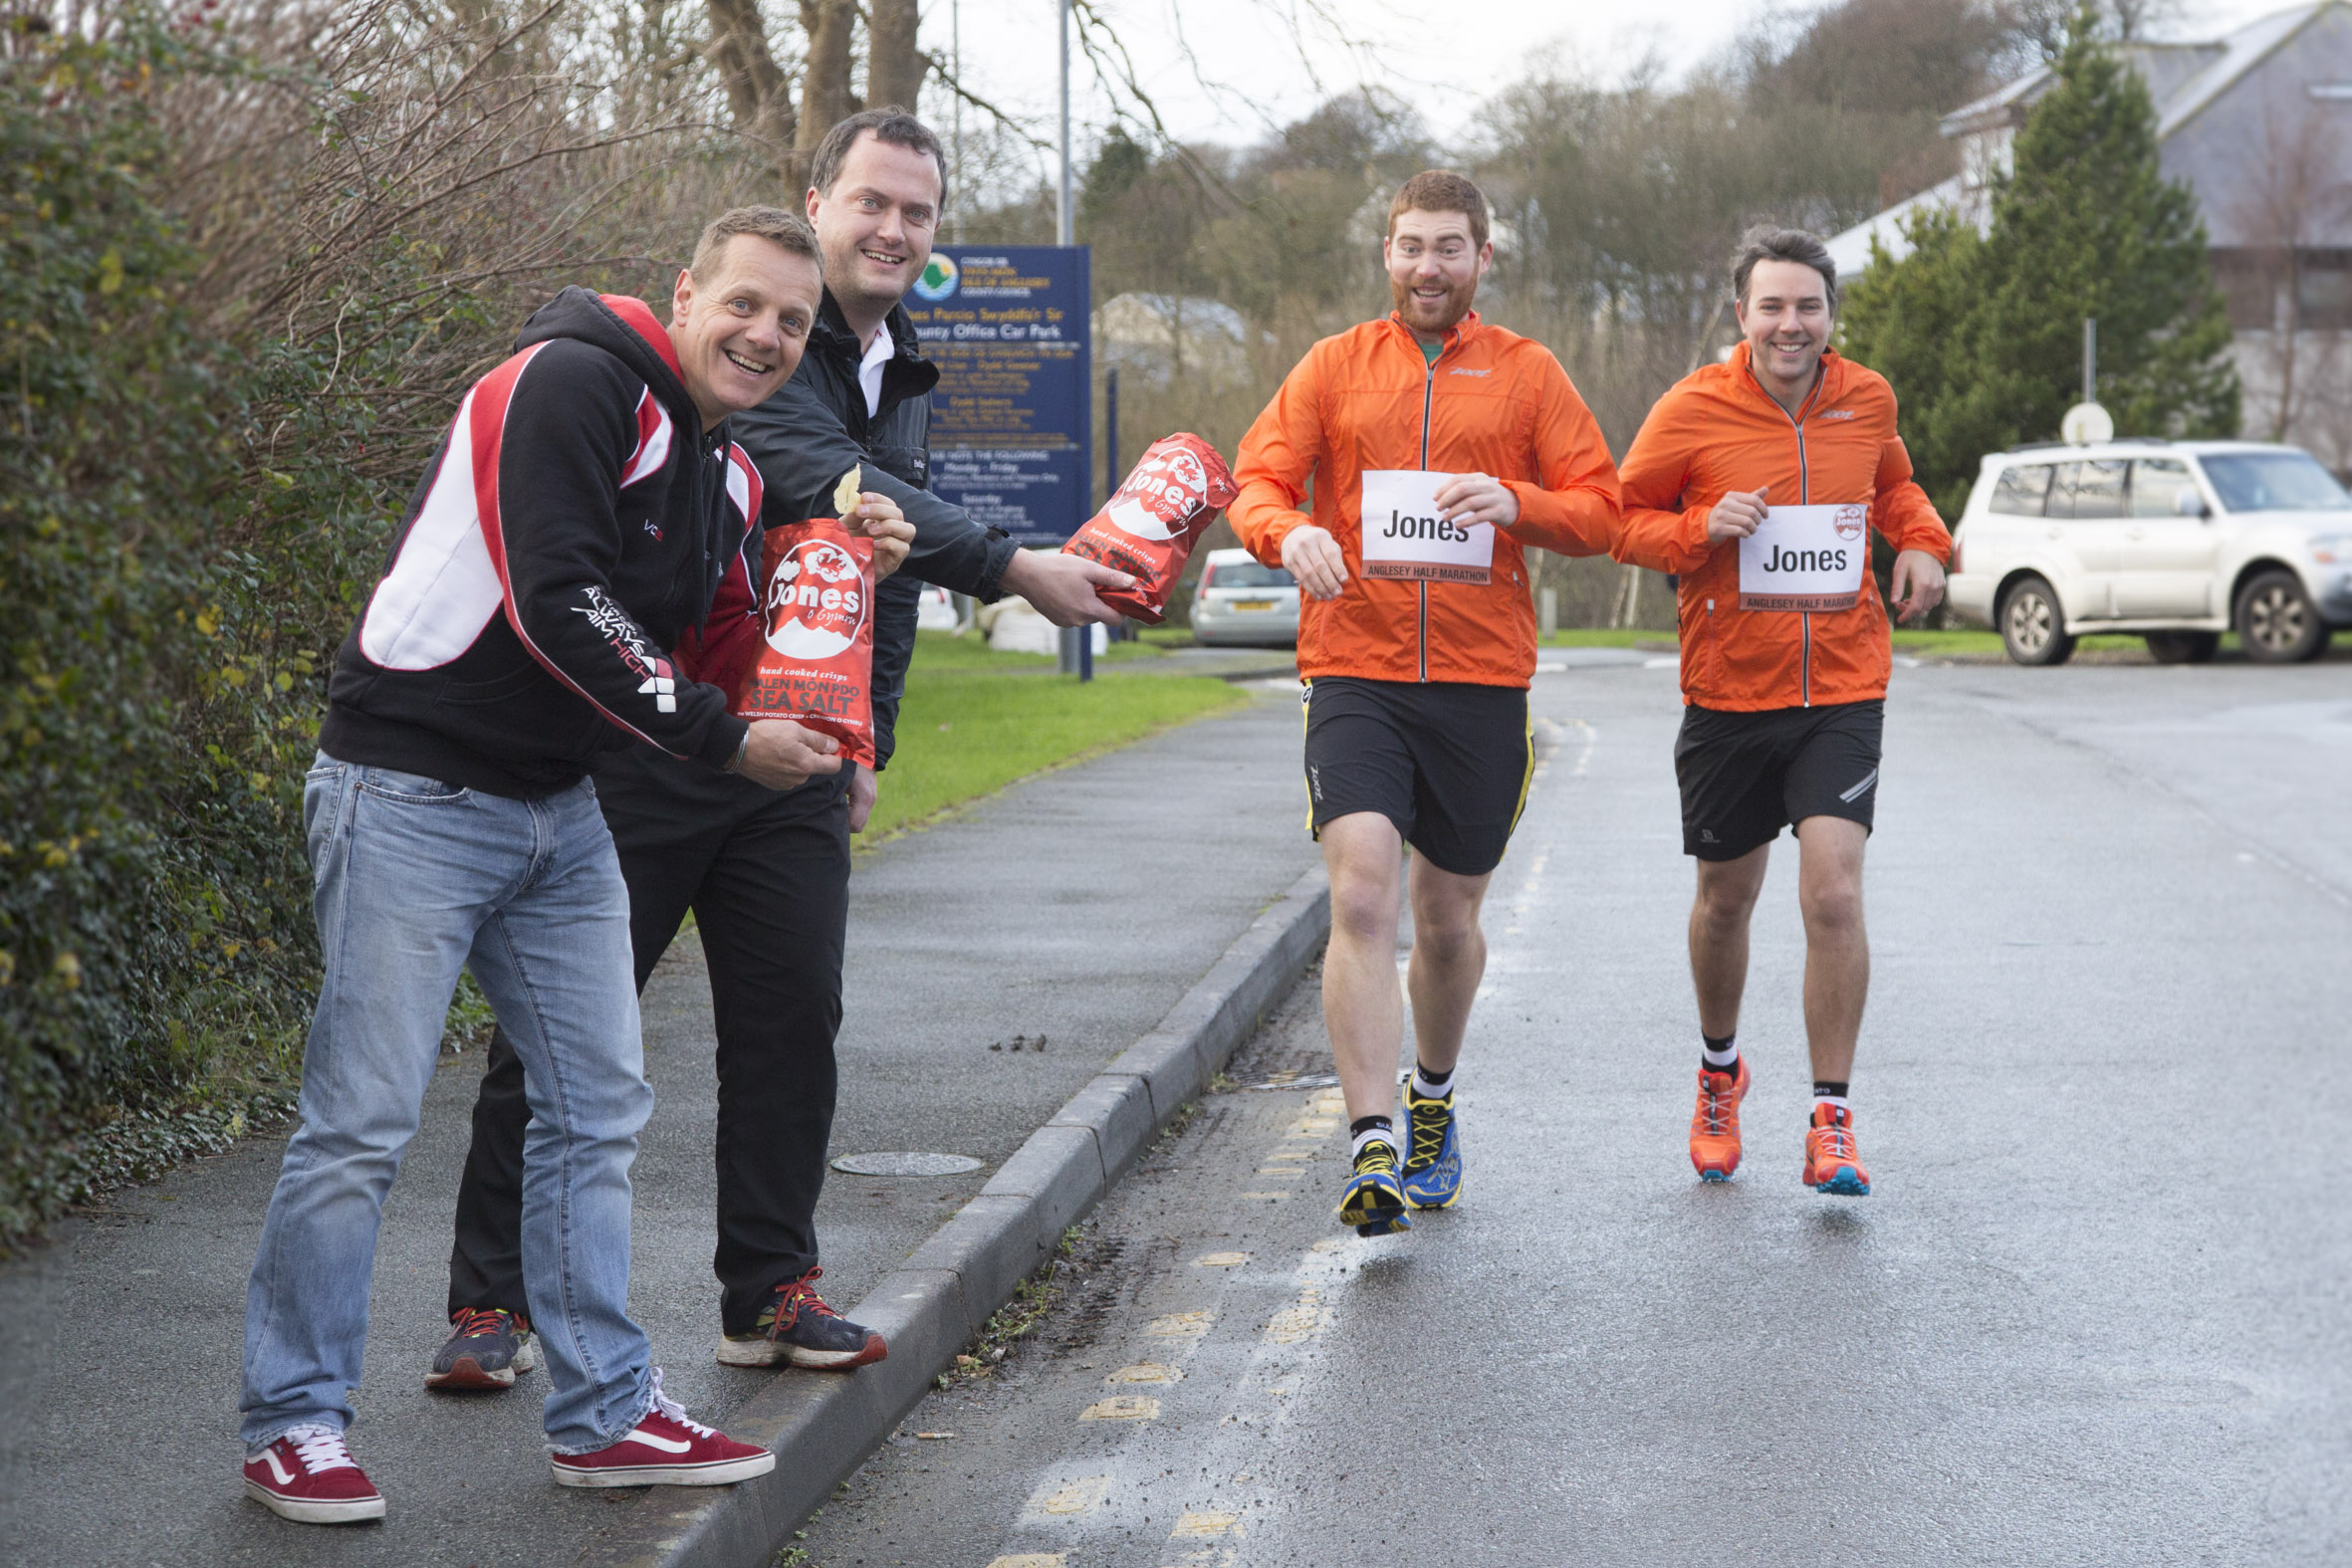 On your marks! Joneses are on the run to set new world record